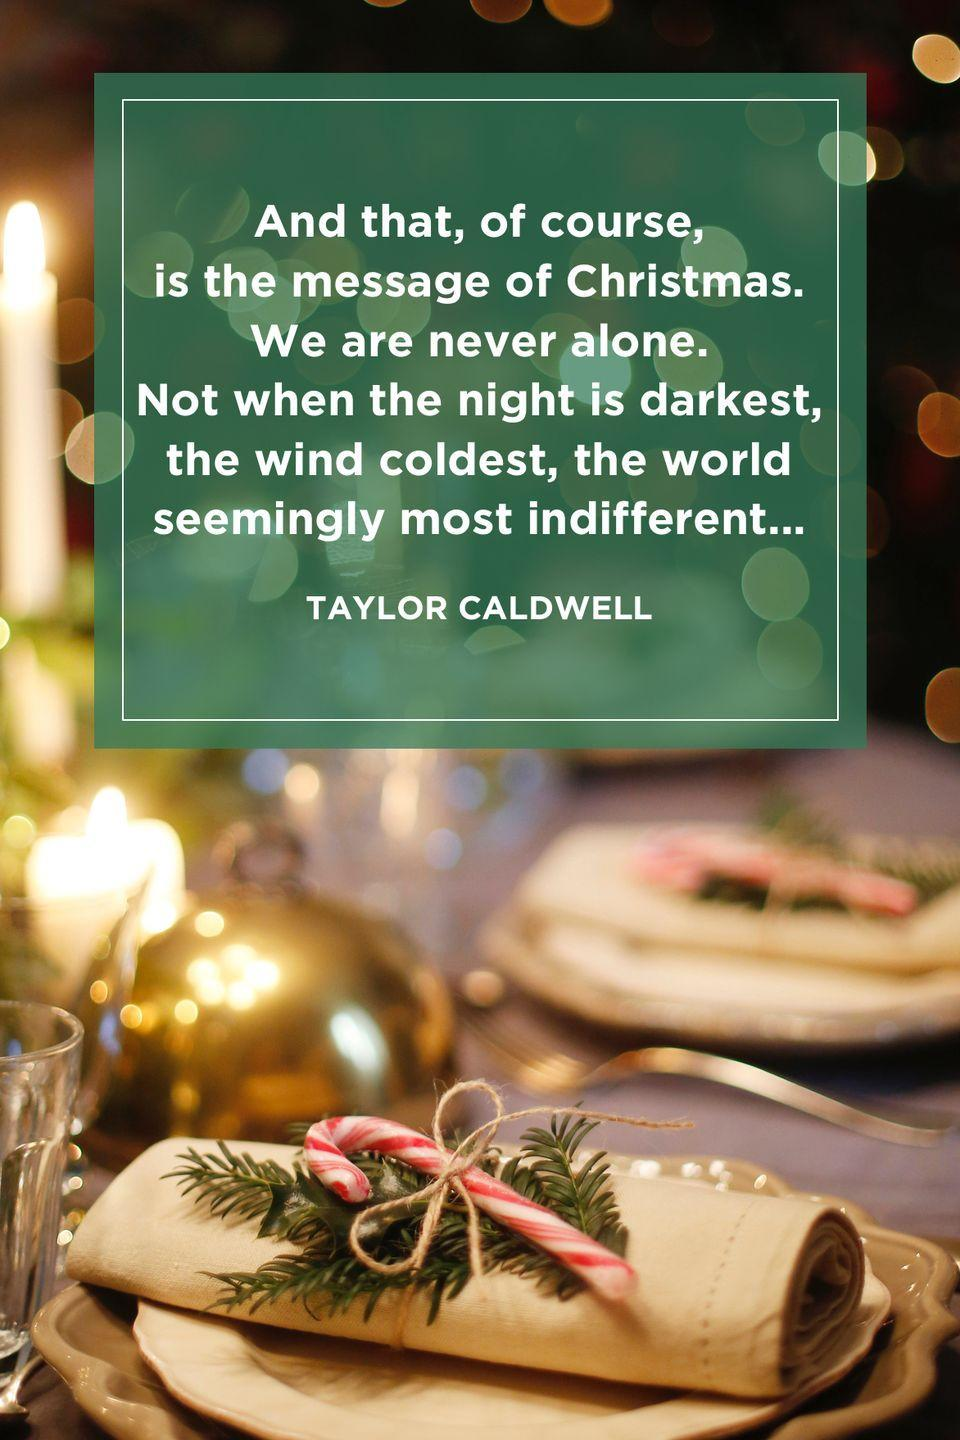 """<p>""""And that, of course, is the message of Christmas. We are never alone. Not when the night is darkest, the wind coldest, the world seemingly most indifferent...""""</p>"""